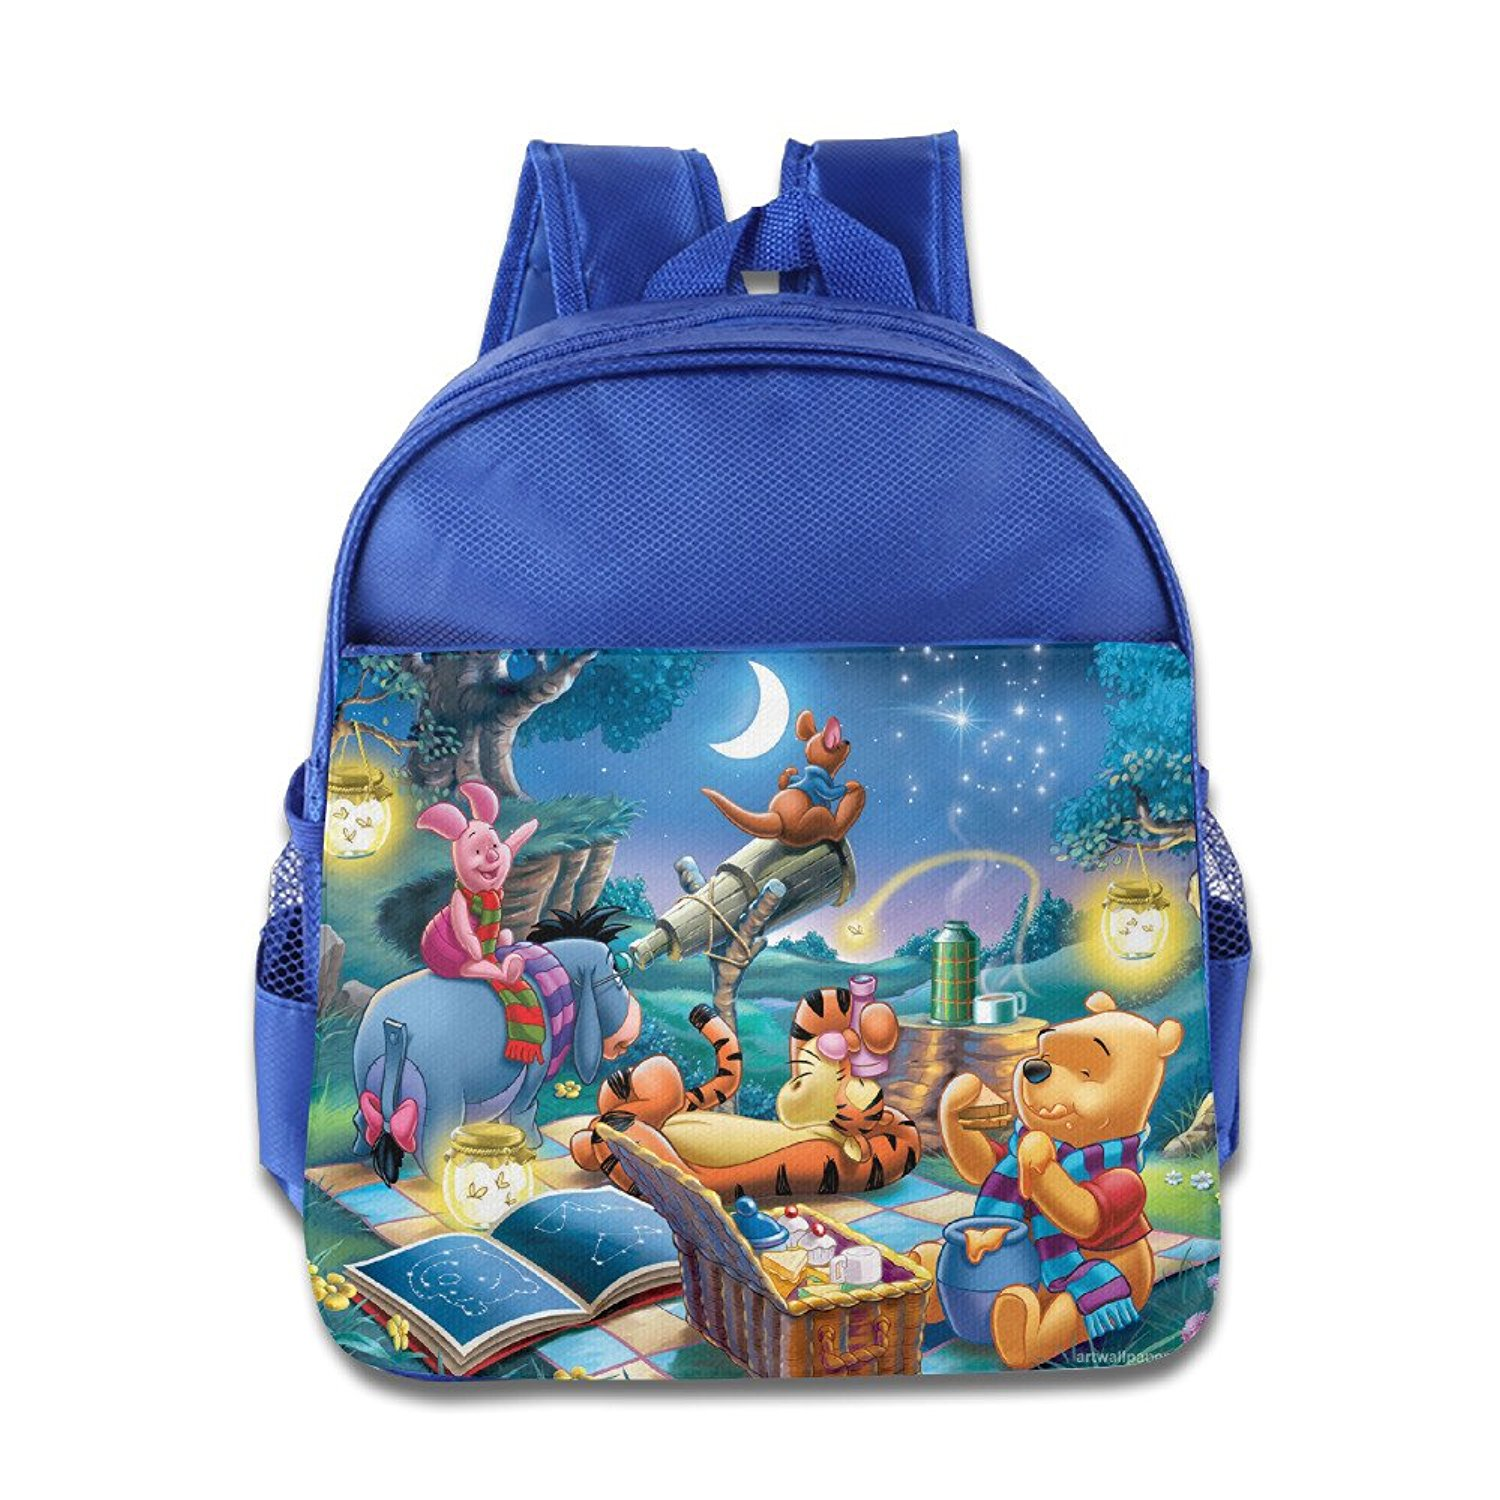 2b5c6252e2a Buy Winnie The Pooh Bear Kids School Backpack Bag in Cheap Price on ...